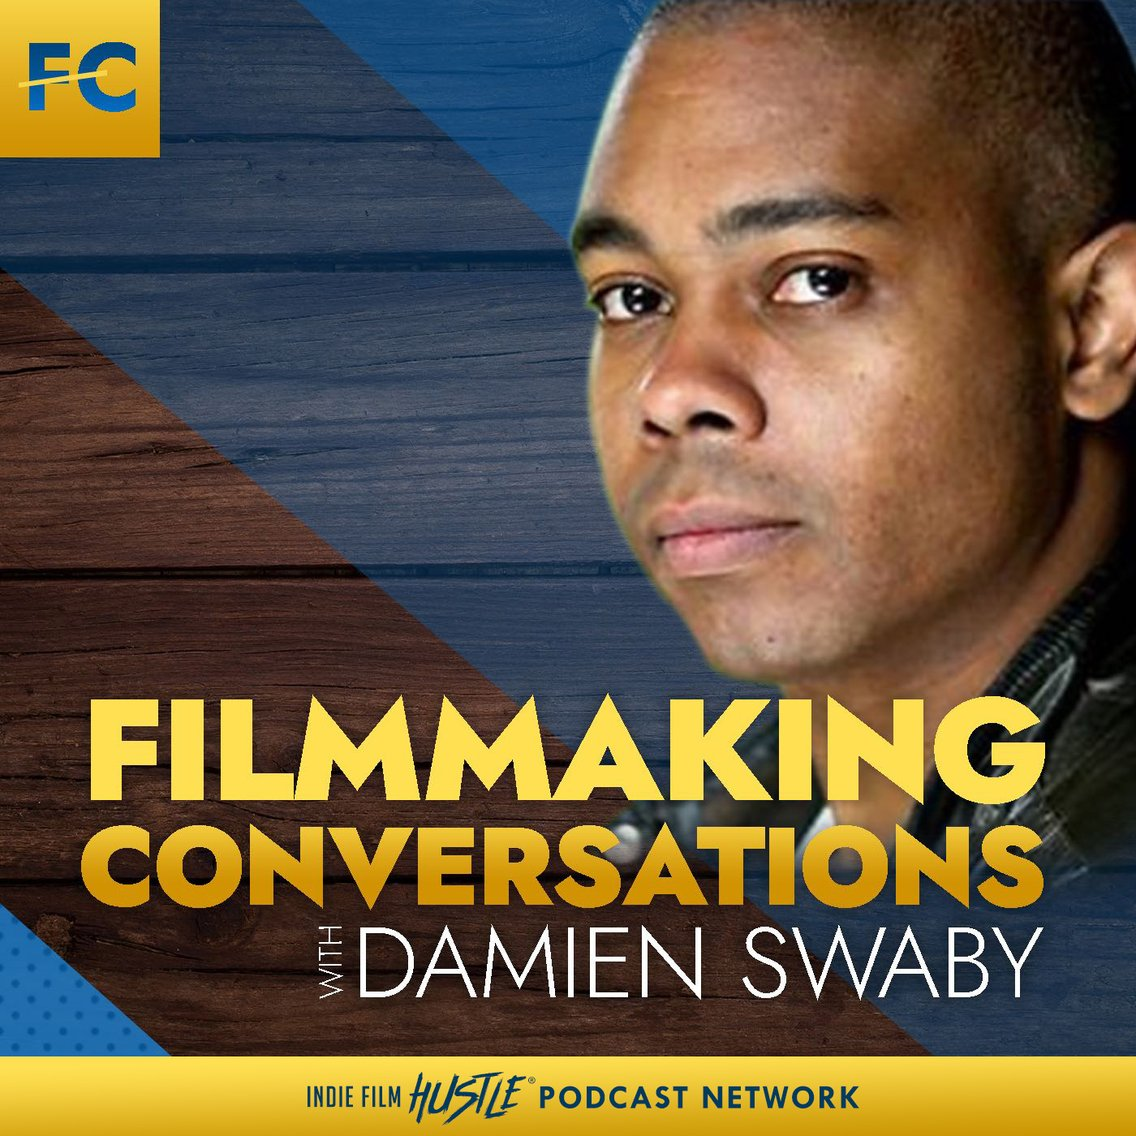 Filmmaking Conversations Podcast with Damien Swaby - Cover Image